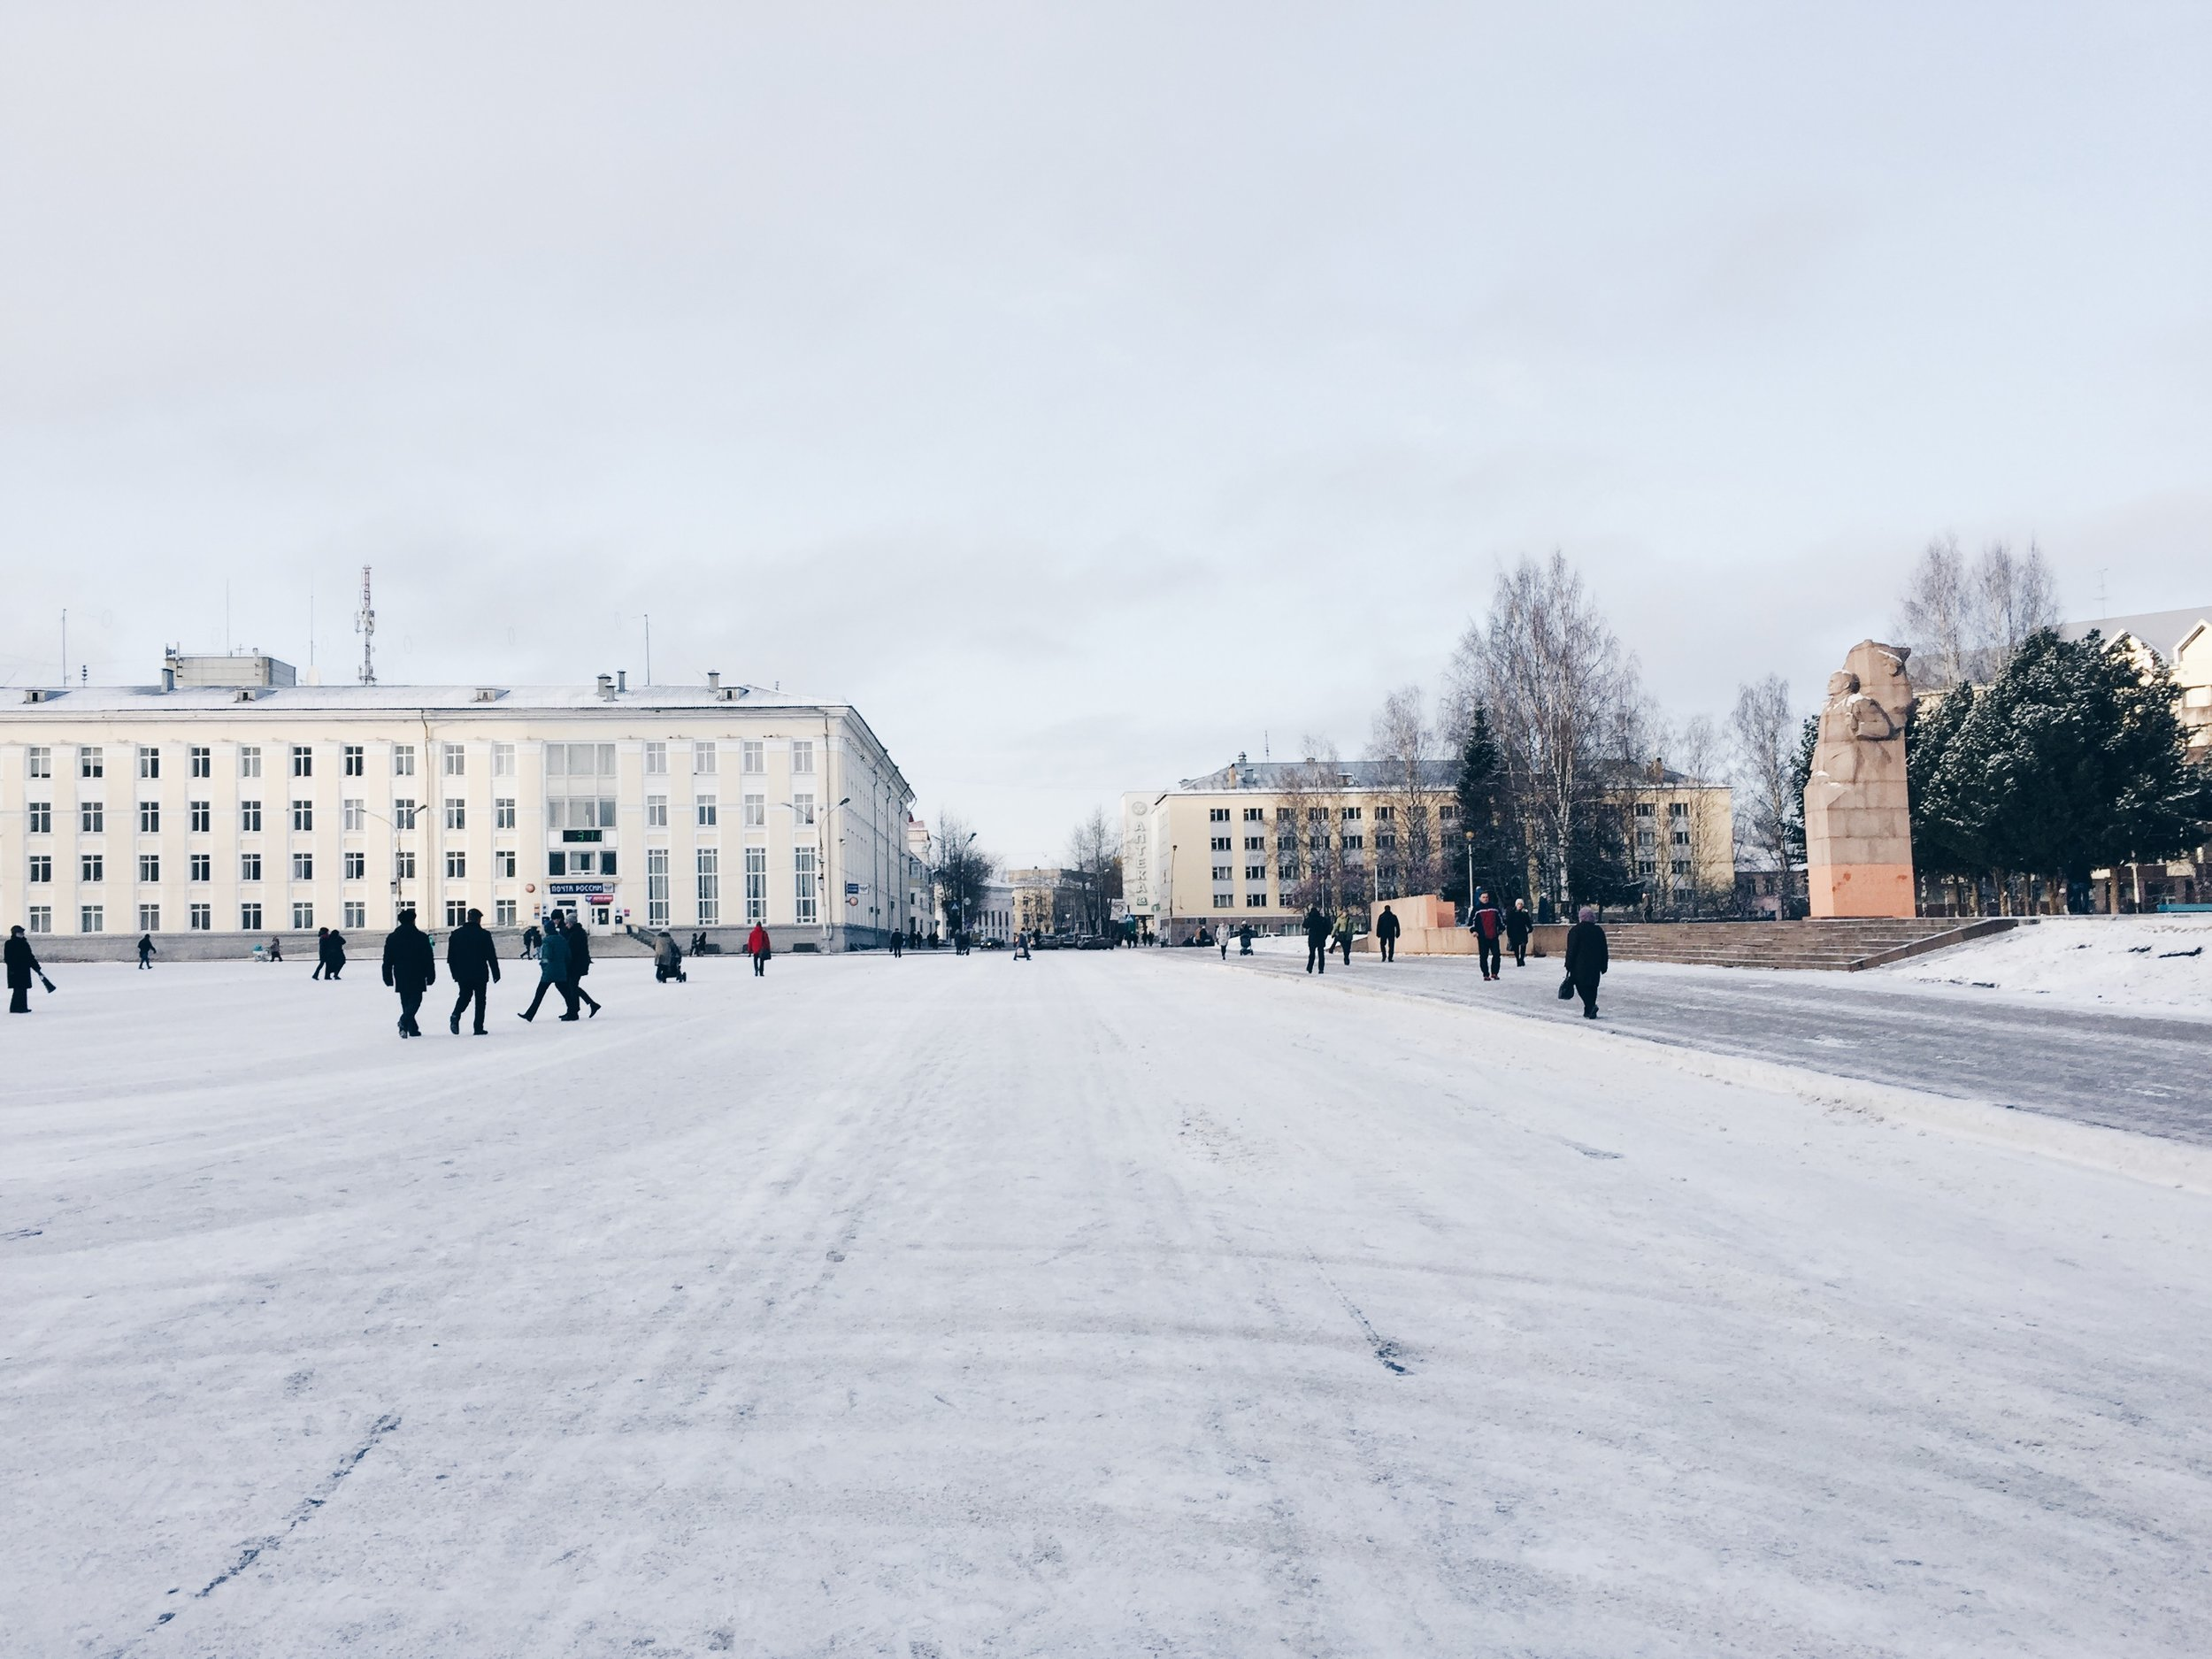 The main square with a statue of Lenin to the right.